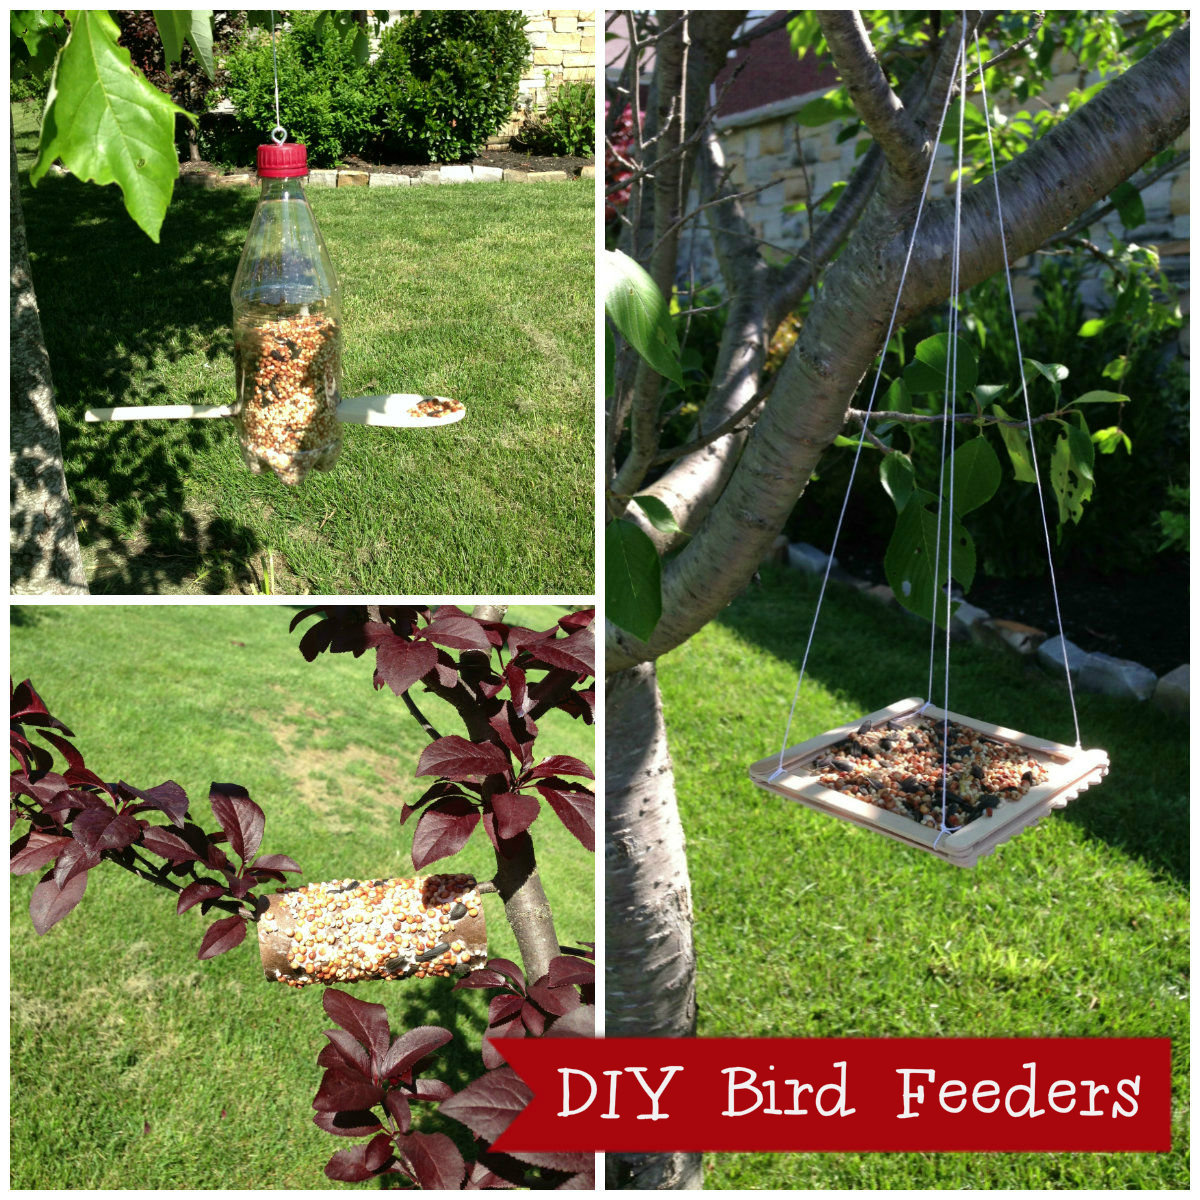 Cub Scout Den Meeting:  Bird Feeders